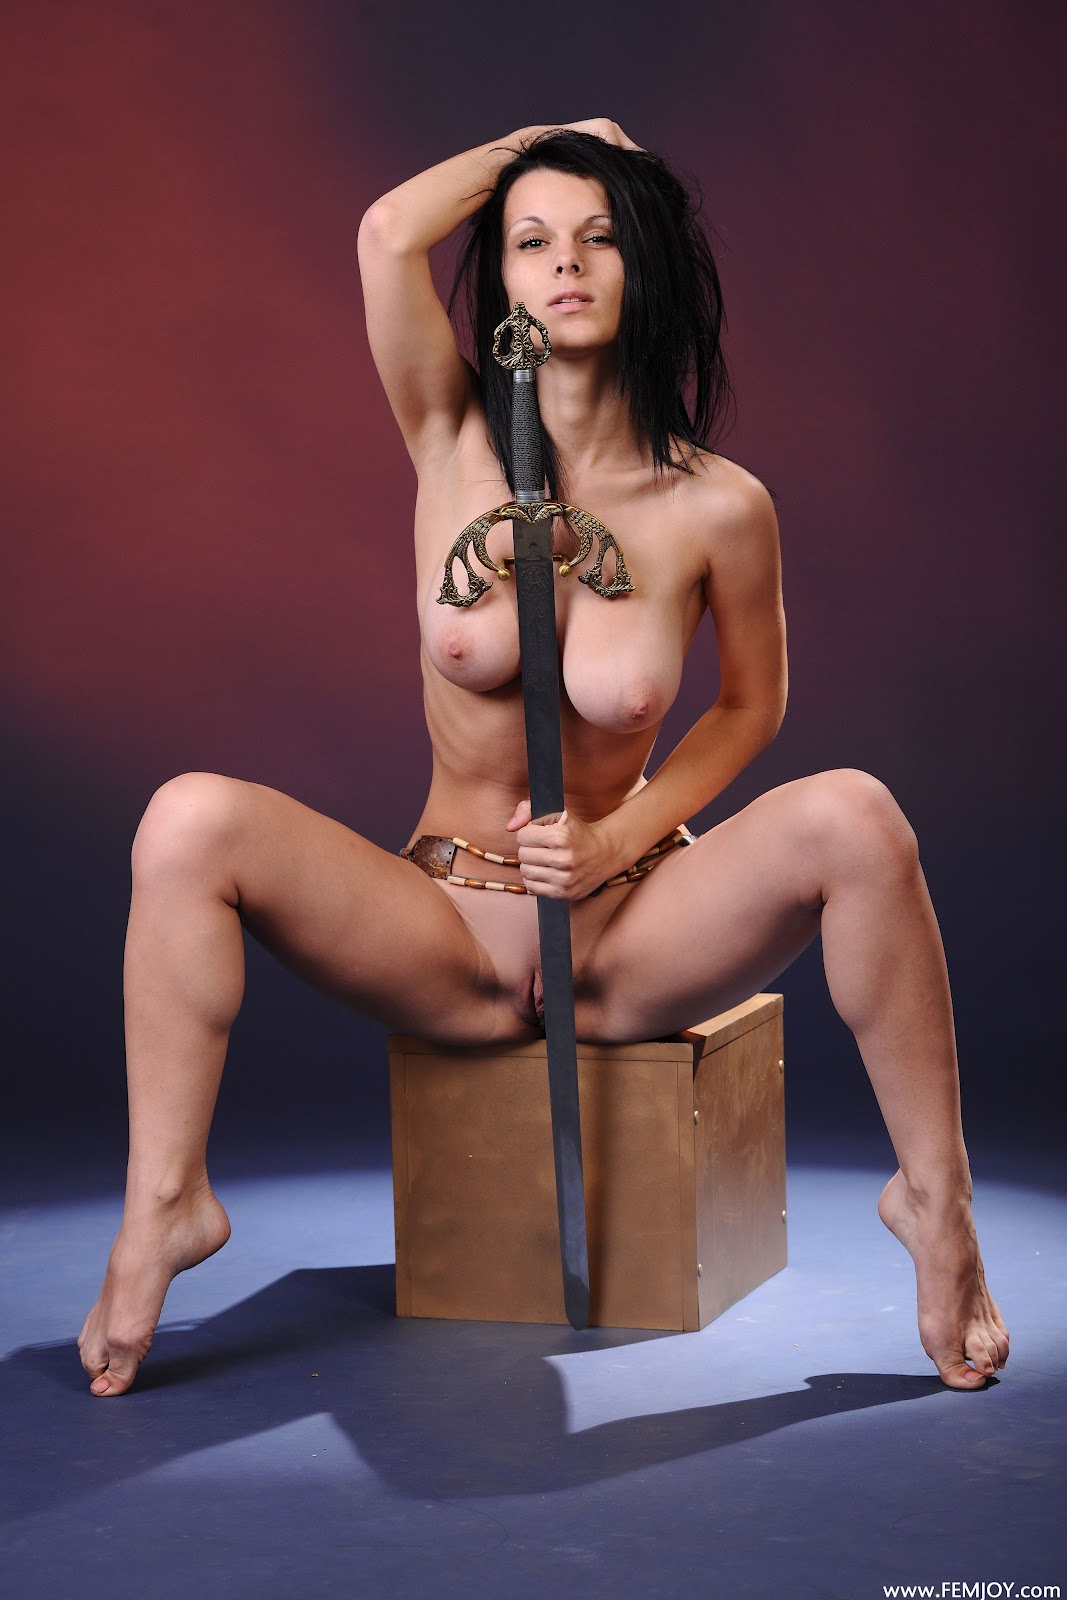 Taylor naked women with swords hd real